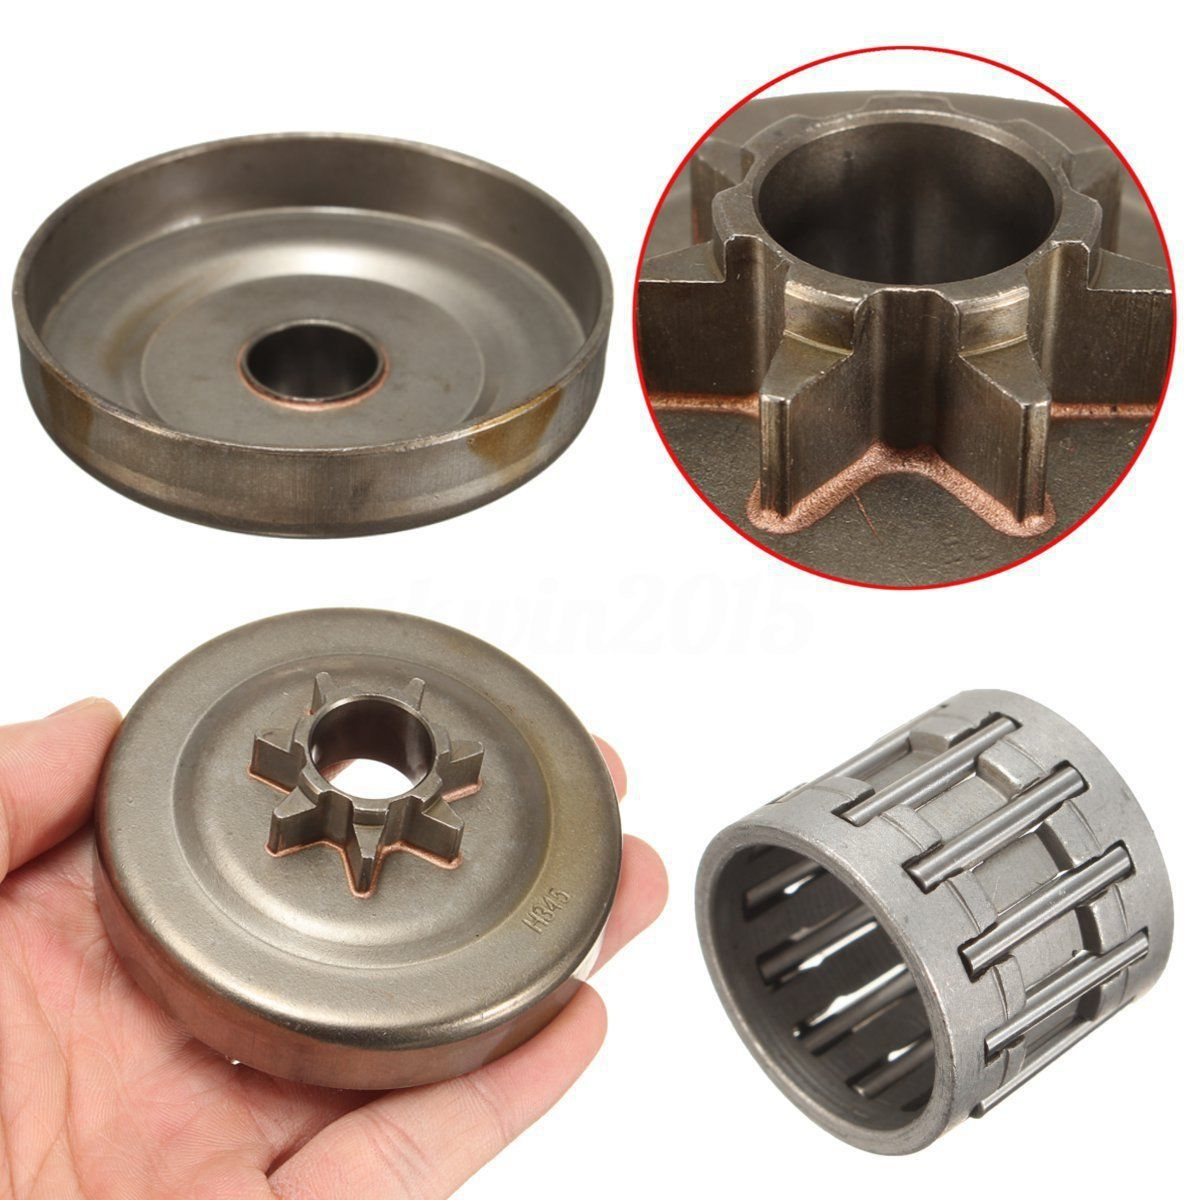 Steel High Quality 7 Teeth Clutch Cover Drum Chain Sprocket Chainsaw Mayitr Garden Tools chainsaw clutch with drum needle bearing kit fit partner 350 351 chain saw replaces parts